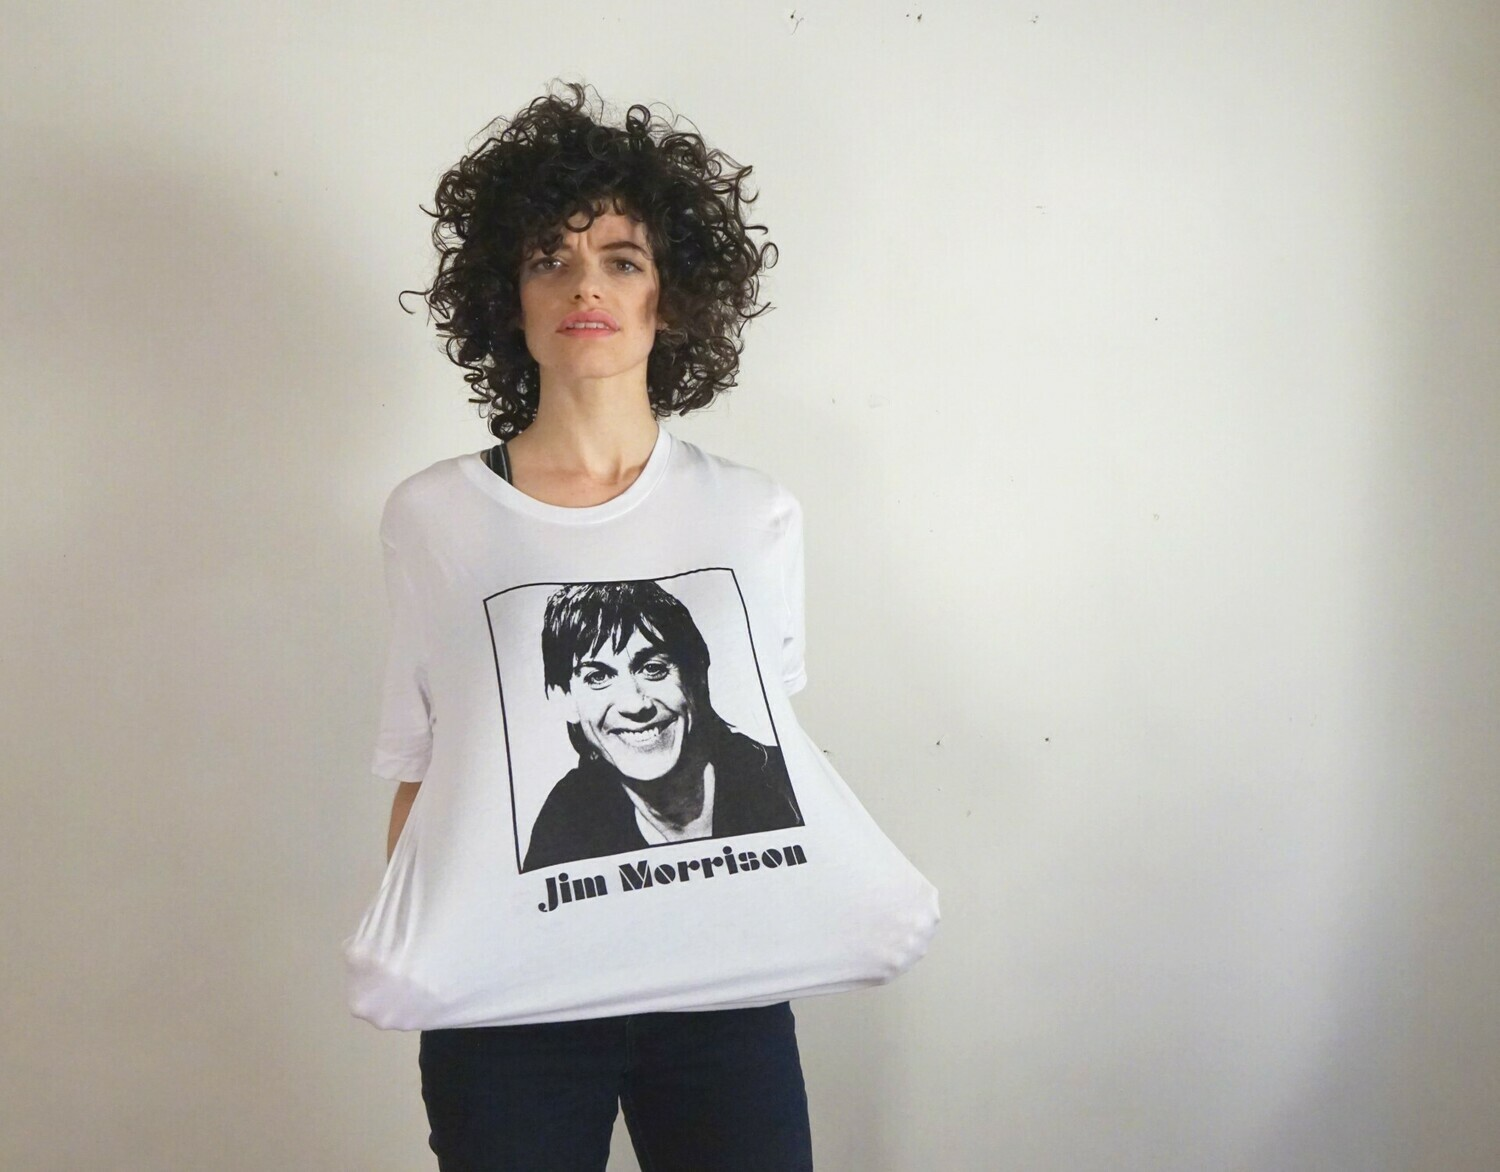 JIM MORRISON - TShirt Large